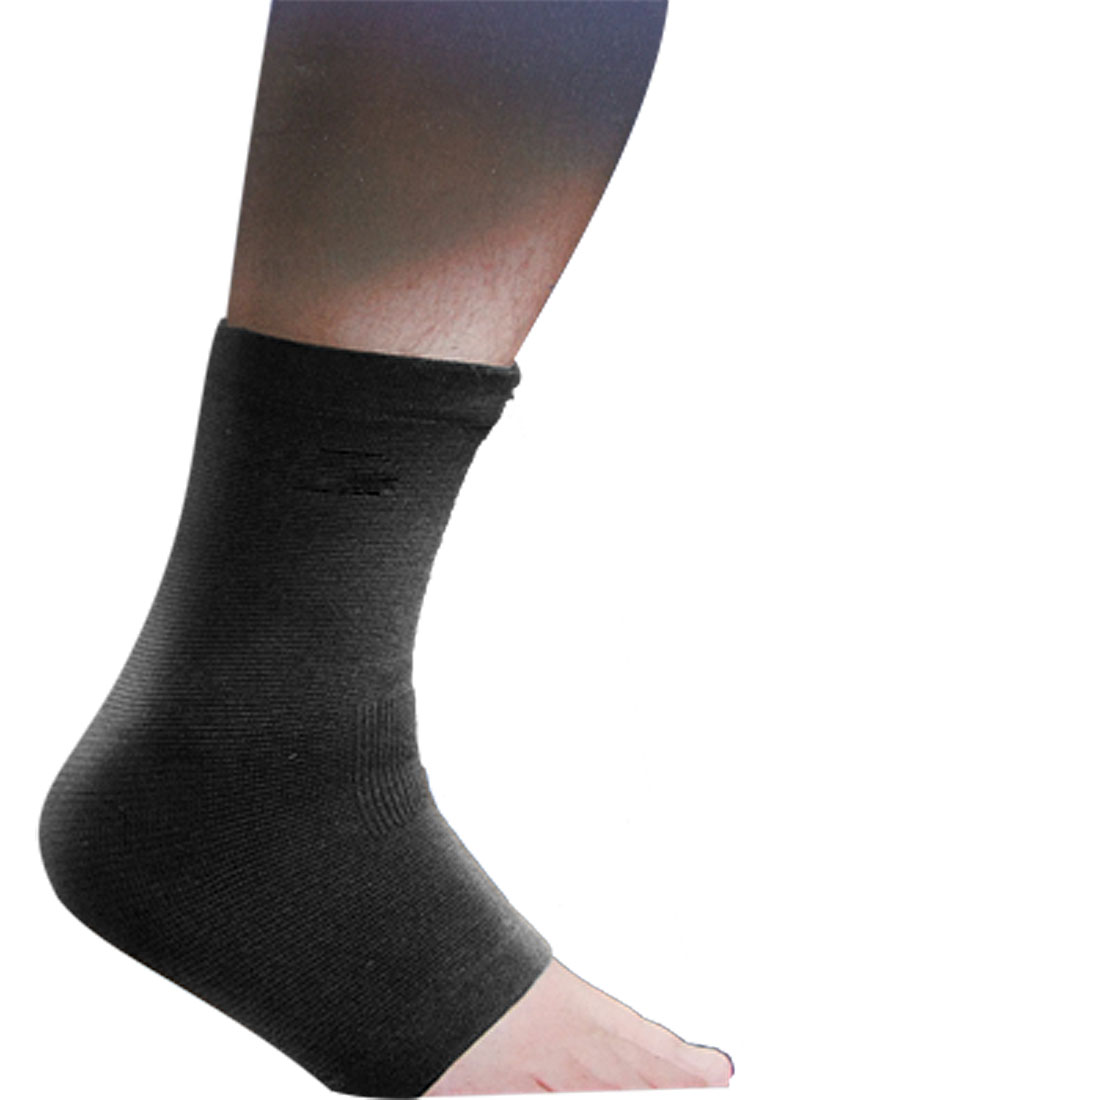 Exercise Training Ankle Support Brace Black Wrapper